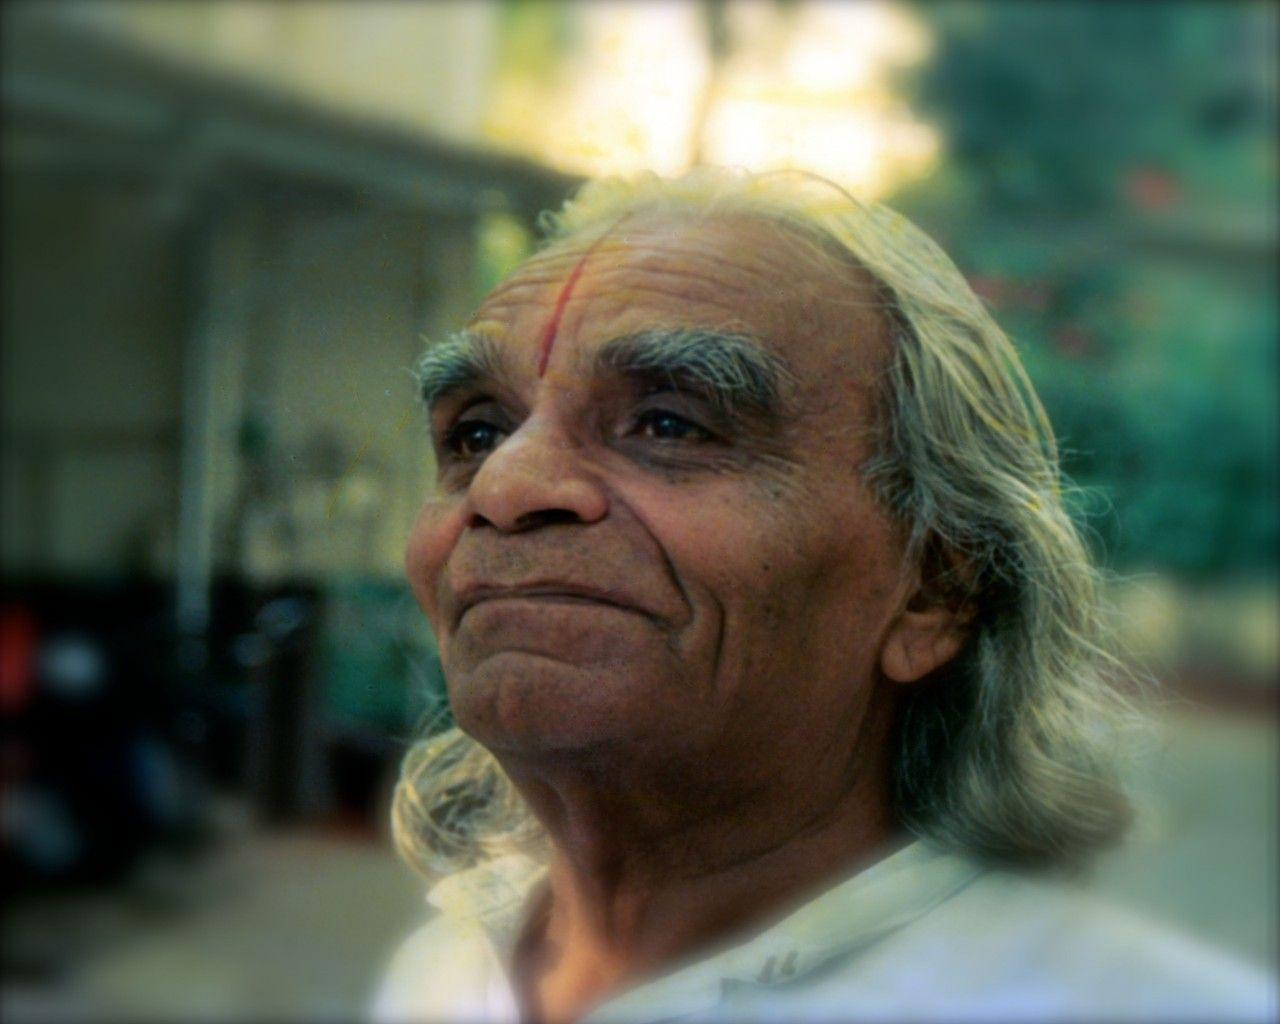 In my darker moments, Mr Iyengar's light still shines